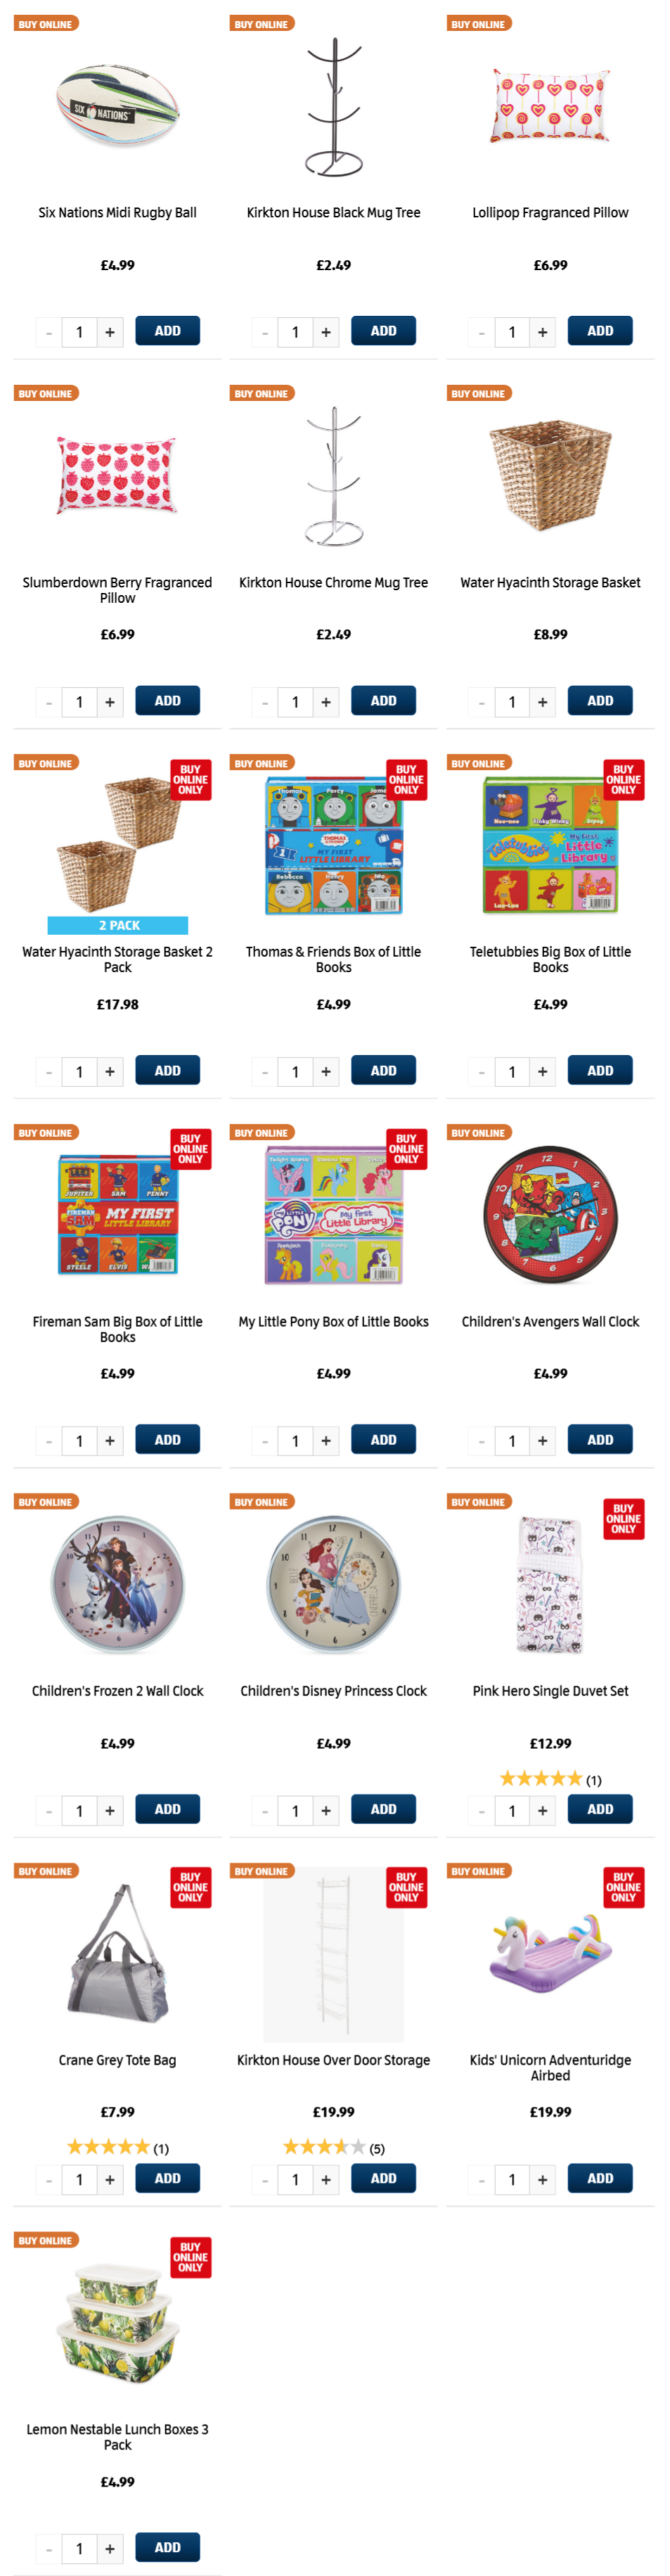 ALDI Thursday Offers 4th February 2021 ALDI Kids Bedroom, Storage, Rugby